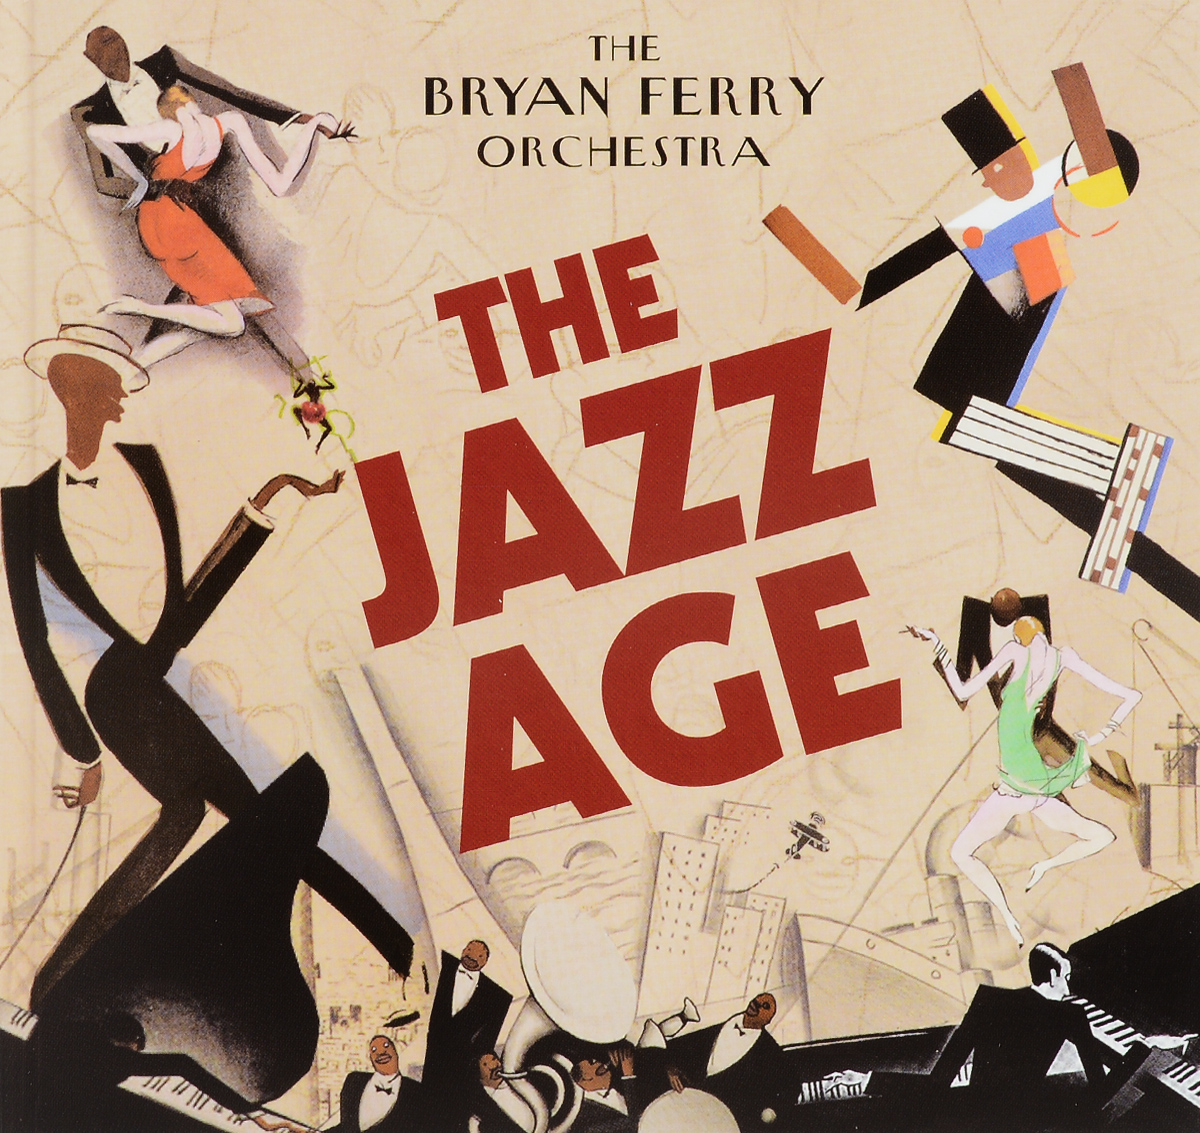 Брайан Ферри,The Bryan Ferry Orchestra The Bryan Ferry Orchestra. The Jazz Age все цены